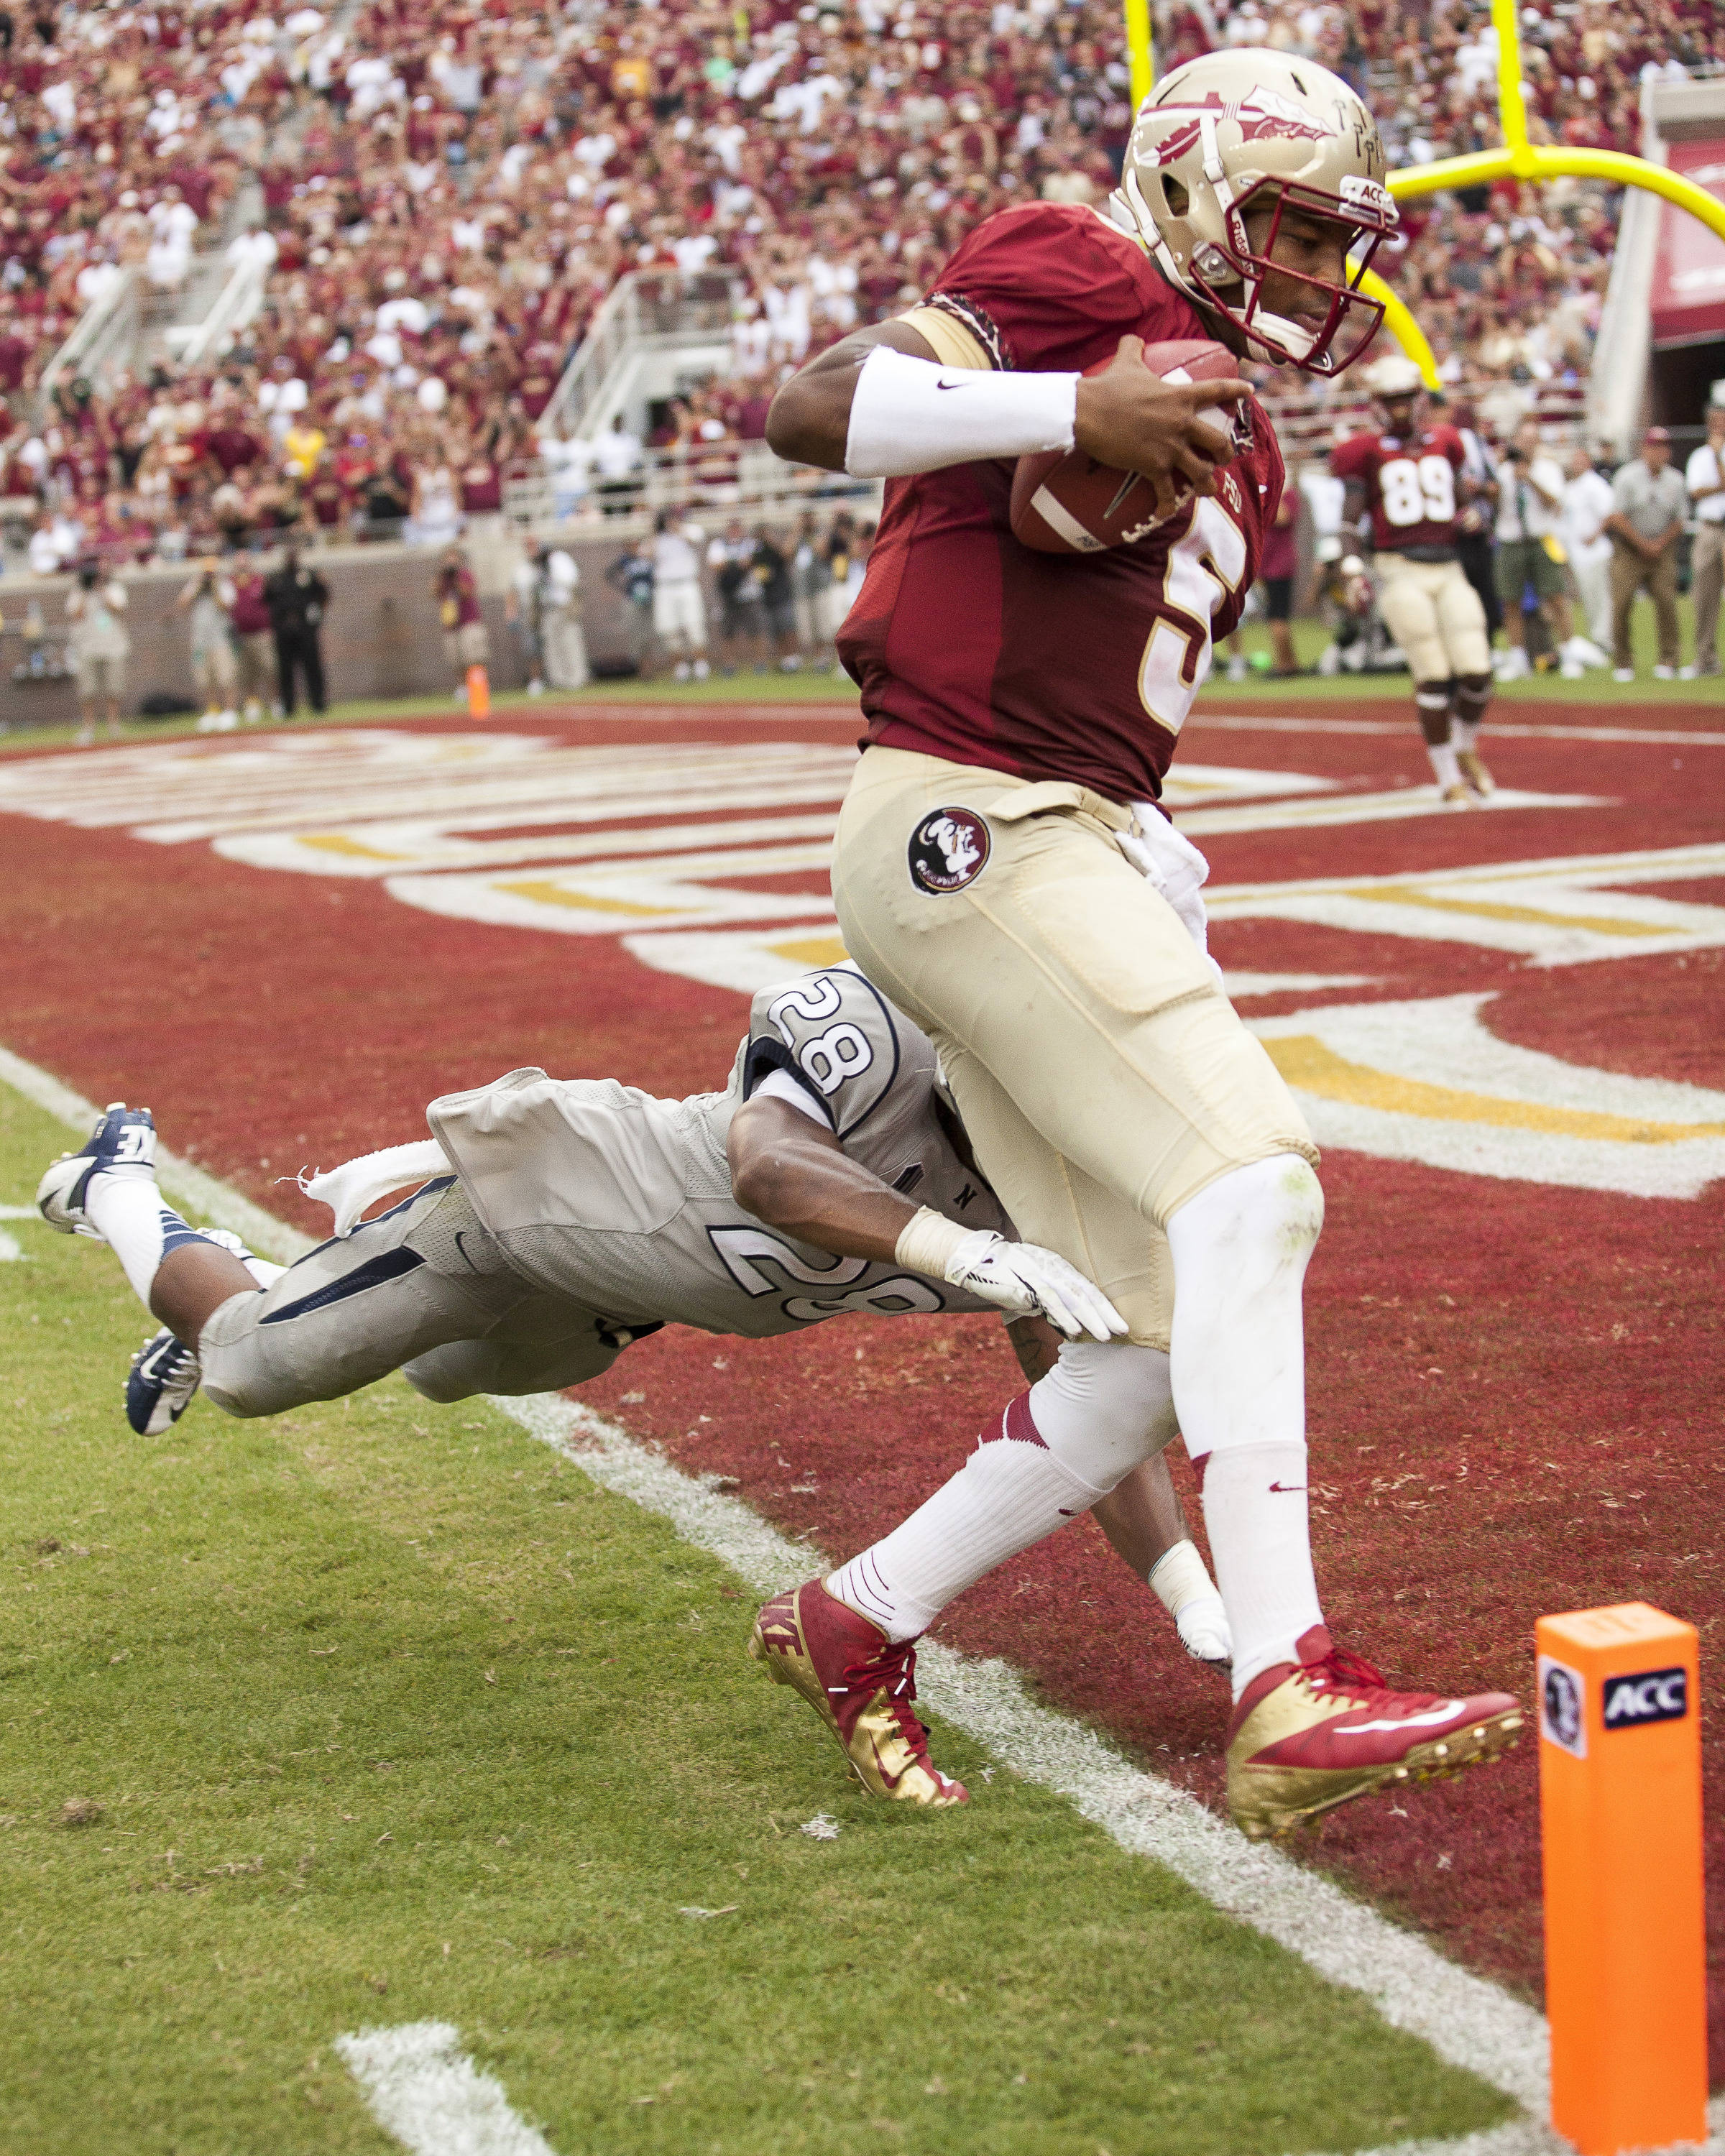 Jameis Winston (5) runs in a touchdown during FSU's 62-7 win over Nevada on Saturday, Sept 14, 2013 in Tallahassee, Fla.